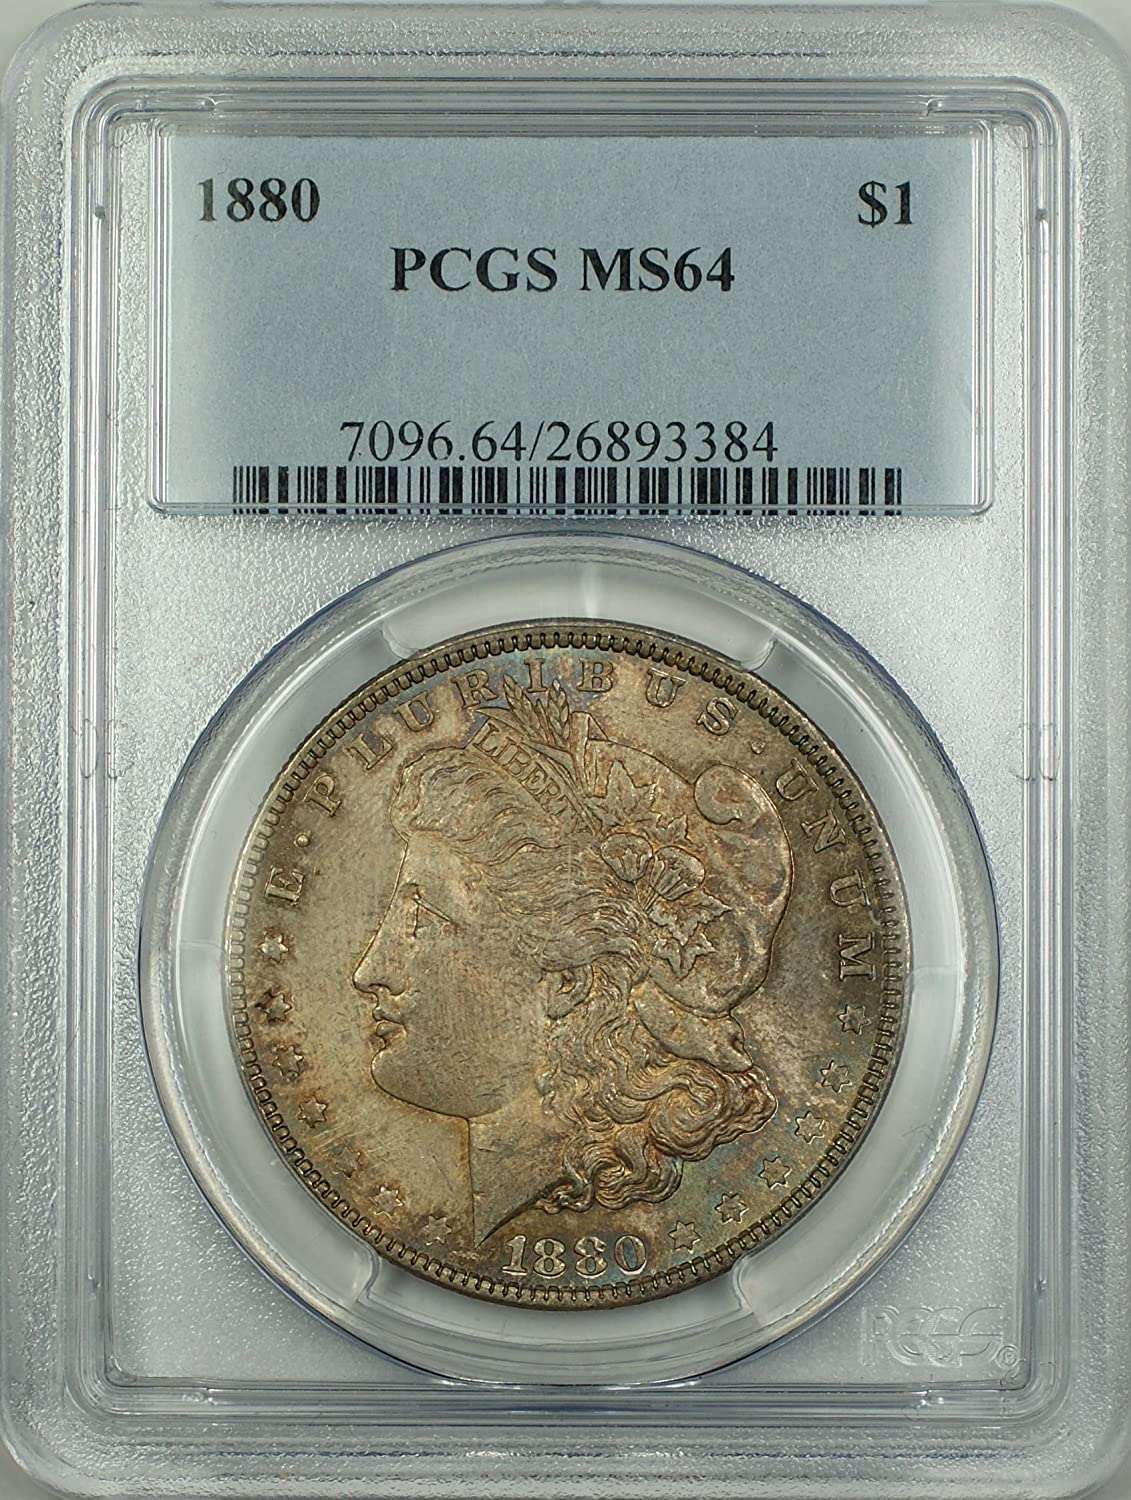 1887 Morgan Silver Dollars PCGS MS64 1886 1880 all sold out 1880-S